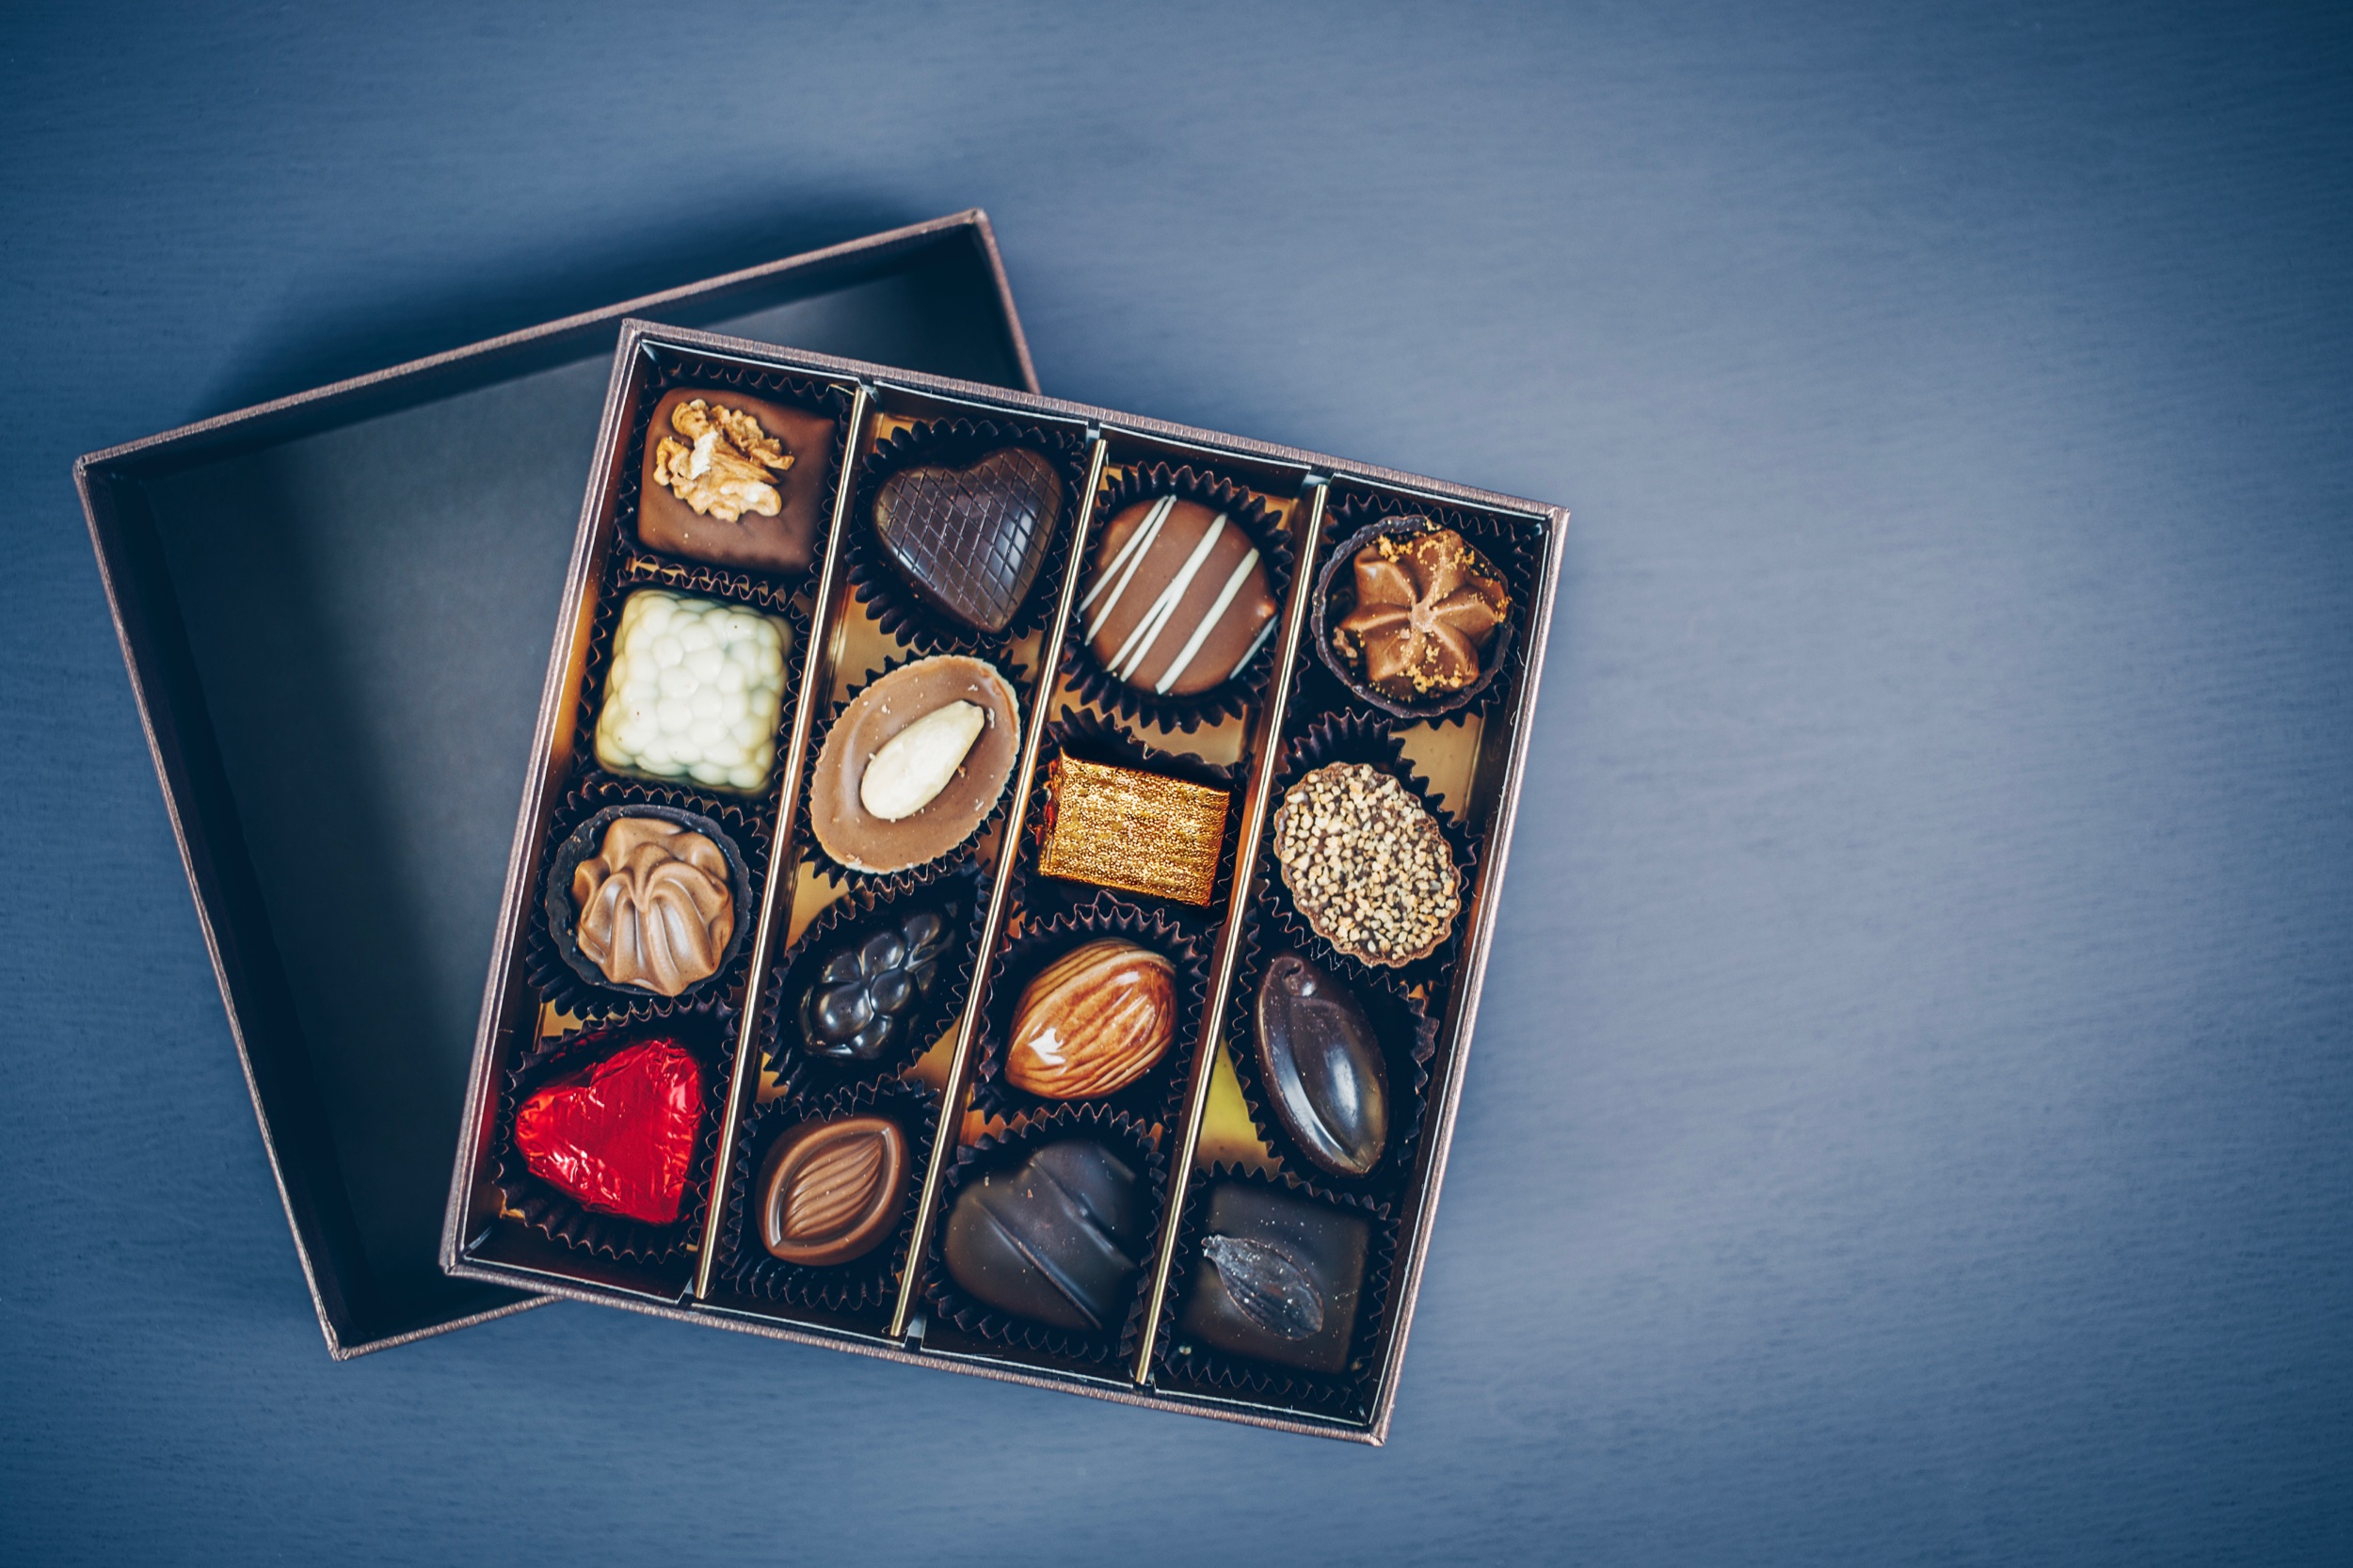 Rideshare providers are like a box of chocolates